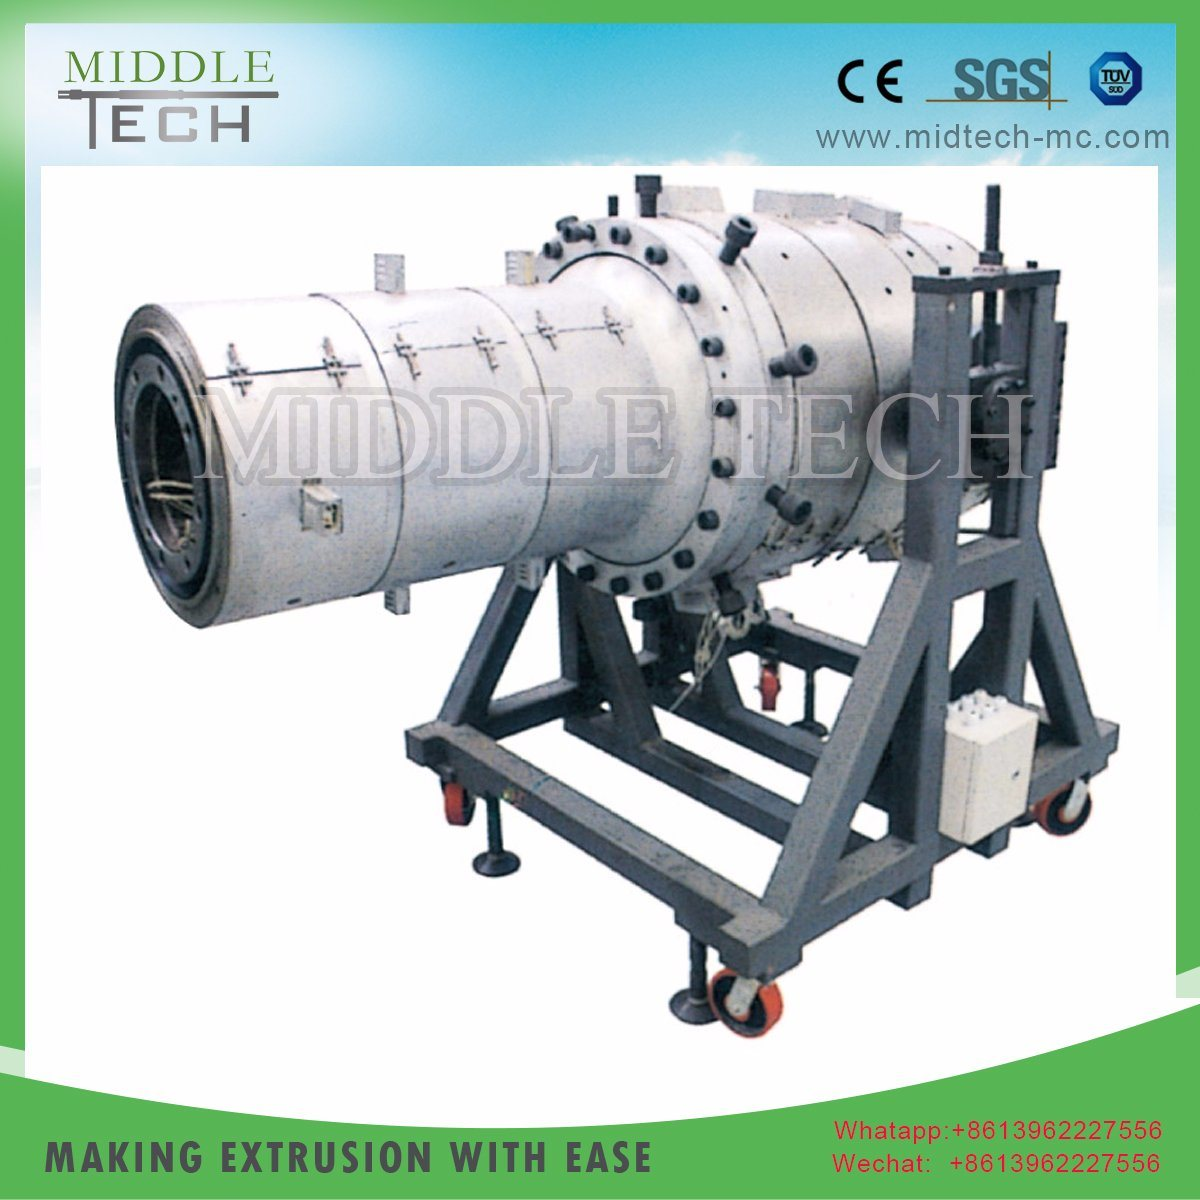 China Plastic Pvc Upvc Electricity Electric Electrical Conduit Cable Pipe Through Which Wires Are Run This Tube Hose Machine Extrusion Manufacturer